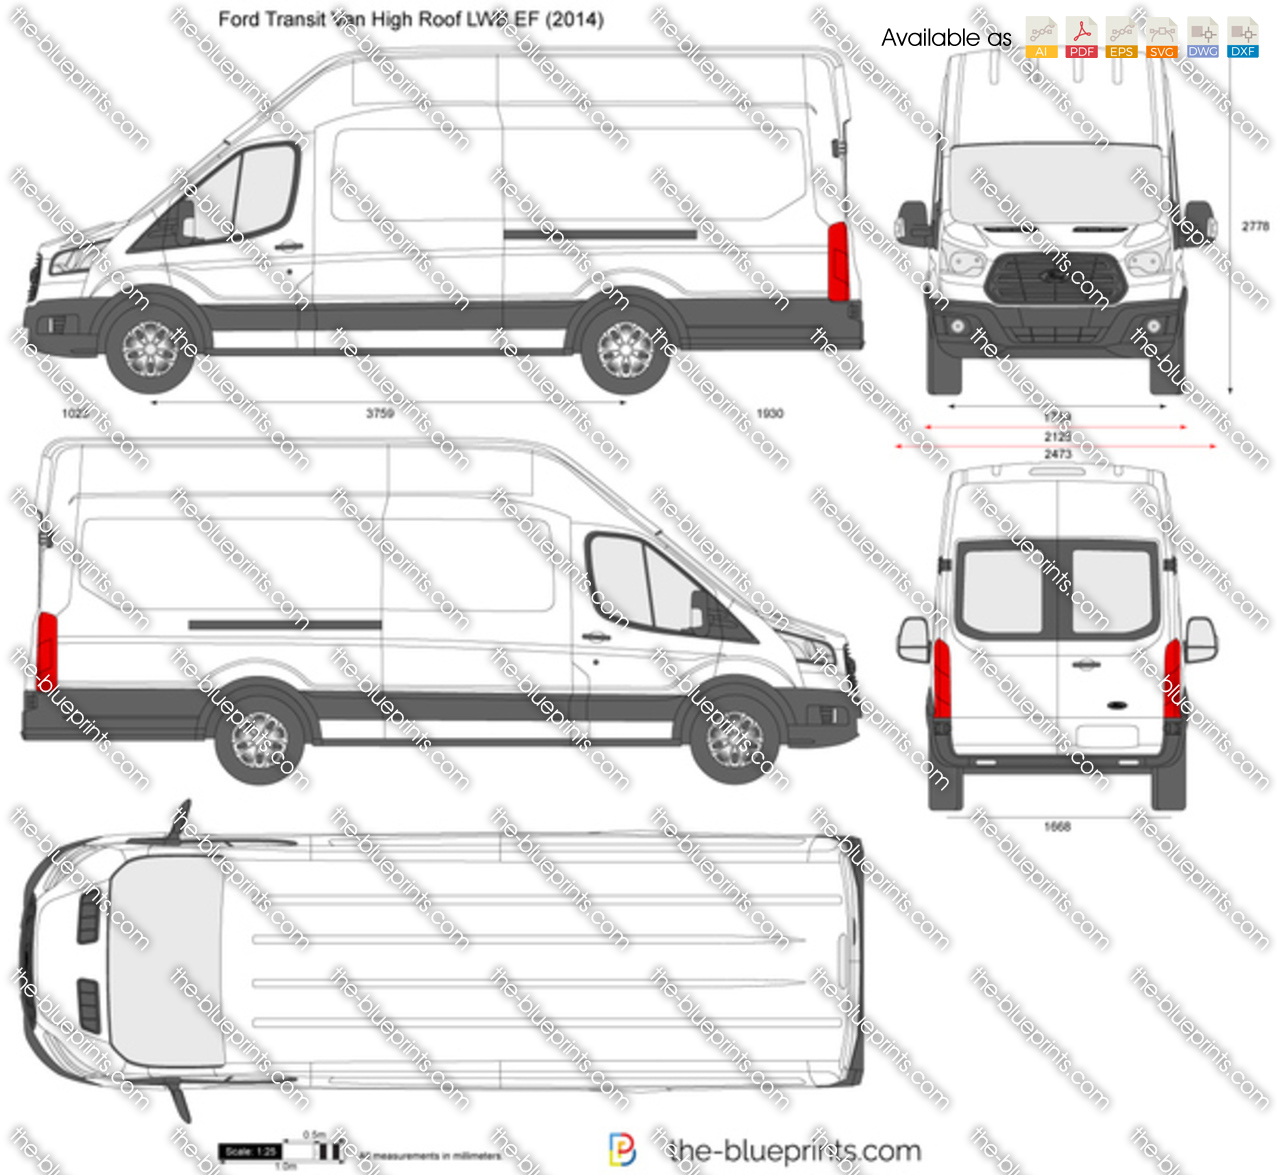 2014 Ford Transit Connect For Sale >> Ford Transit Van High Roof LWB EF vector drawing